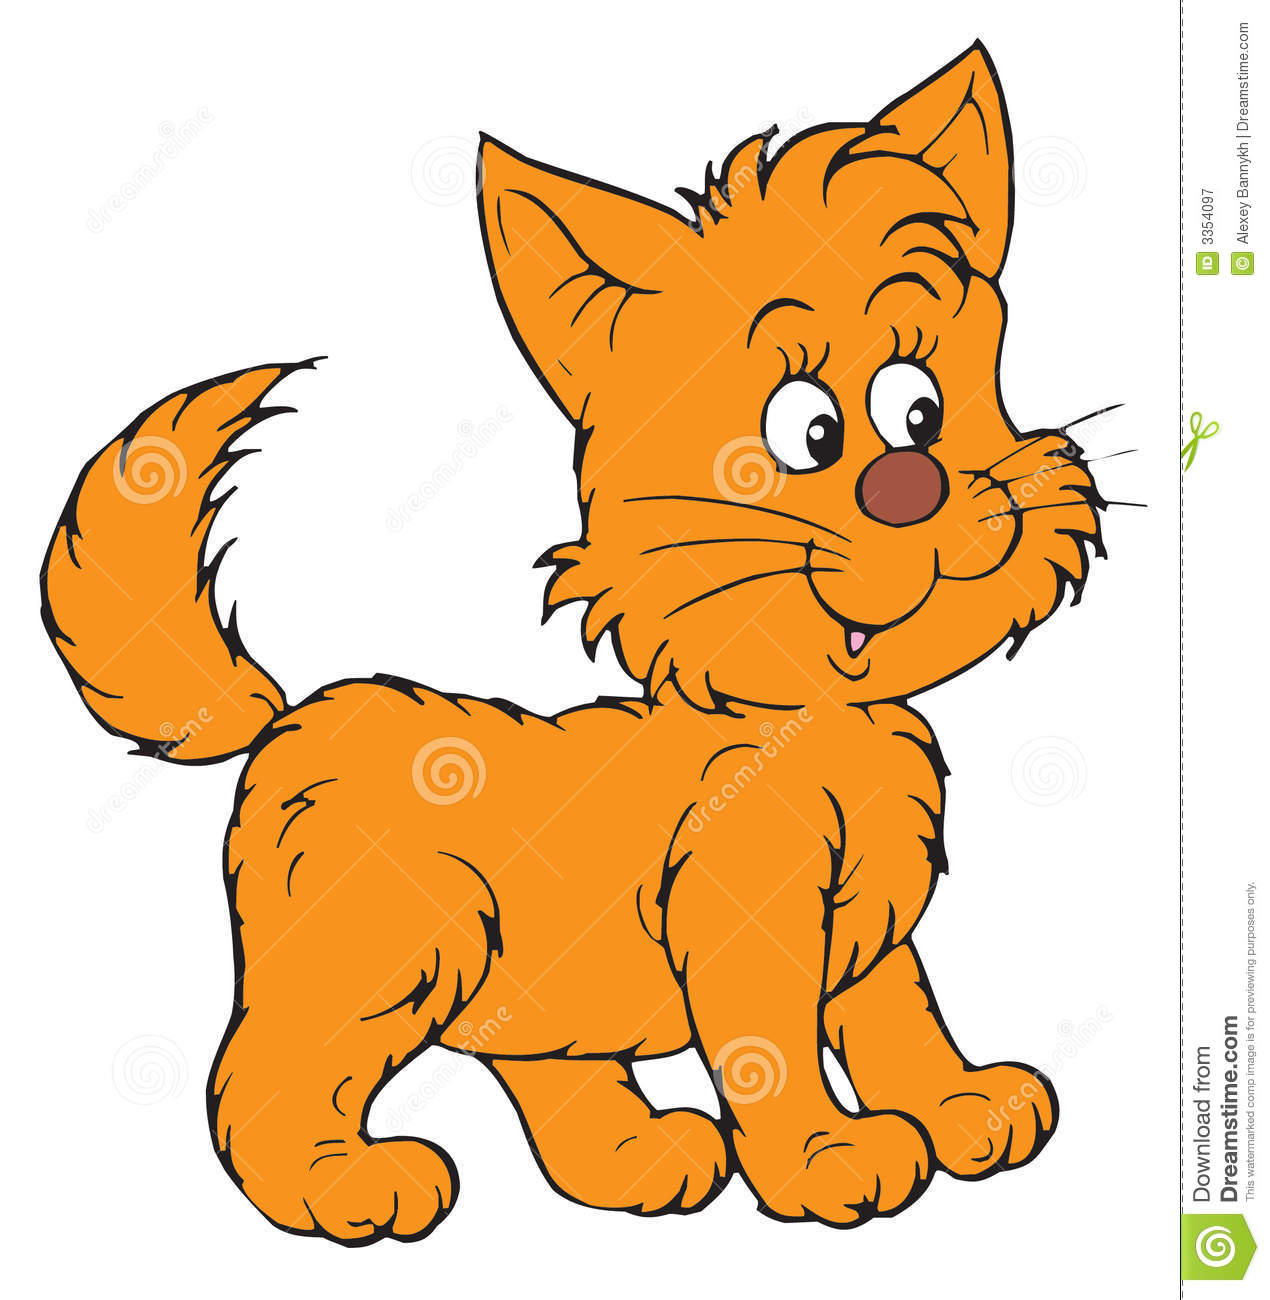 Kitten clipart baby kitten. Collection of free download